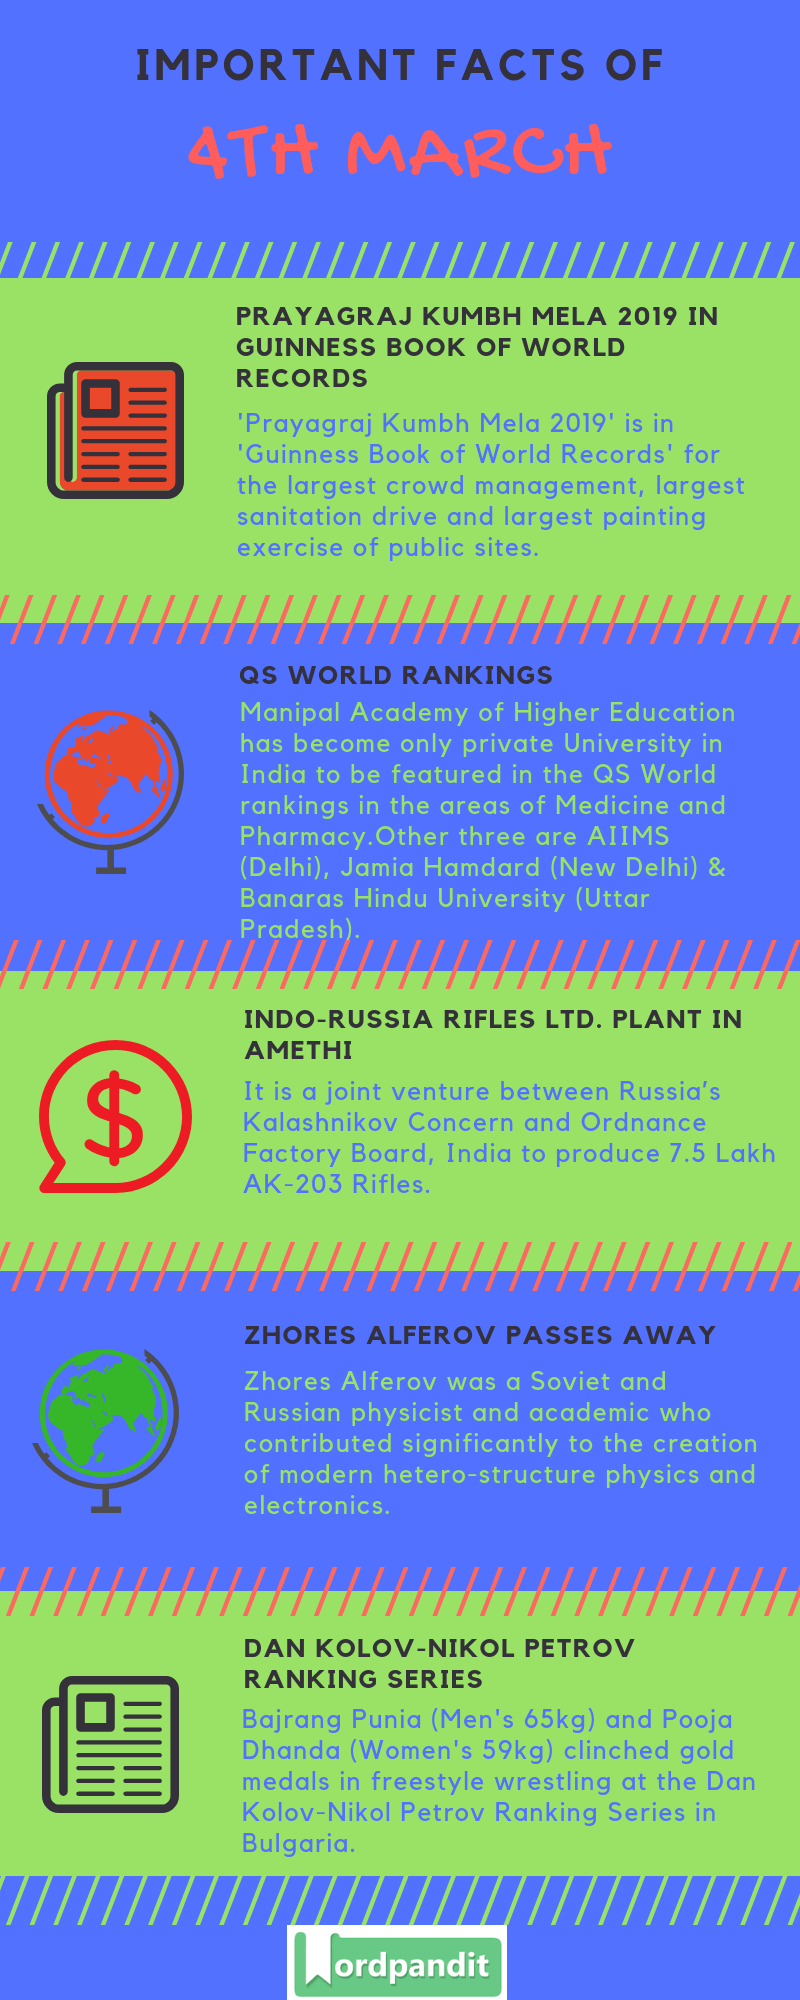 Daily Current Affairs 4 March 2019 Current Affairs Quiz 4 March 2019 Current Affairs Infographic